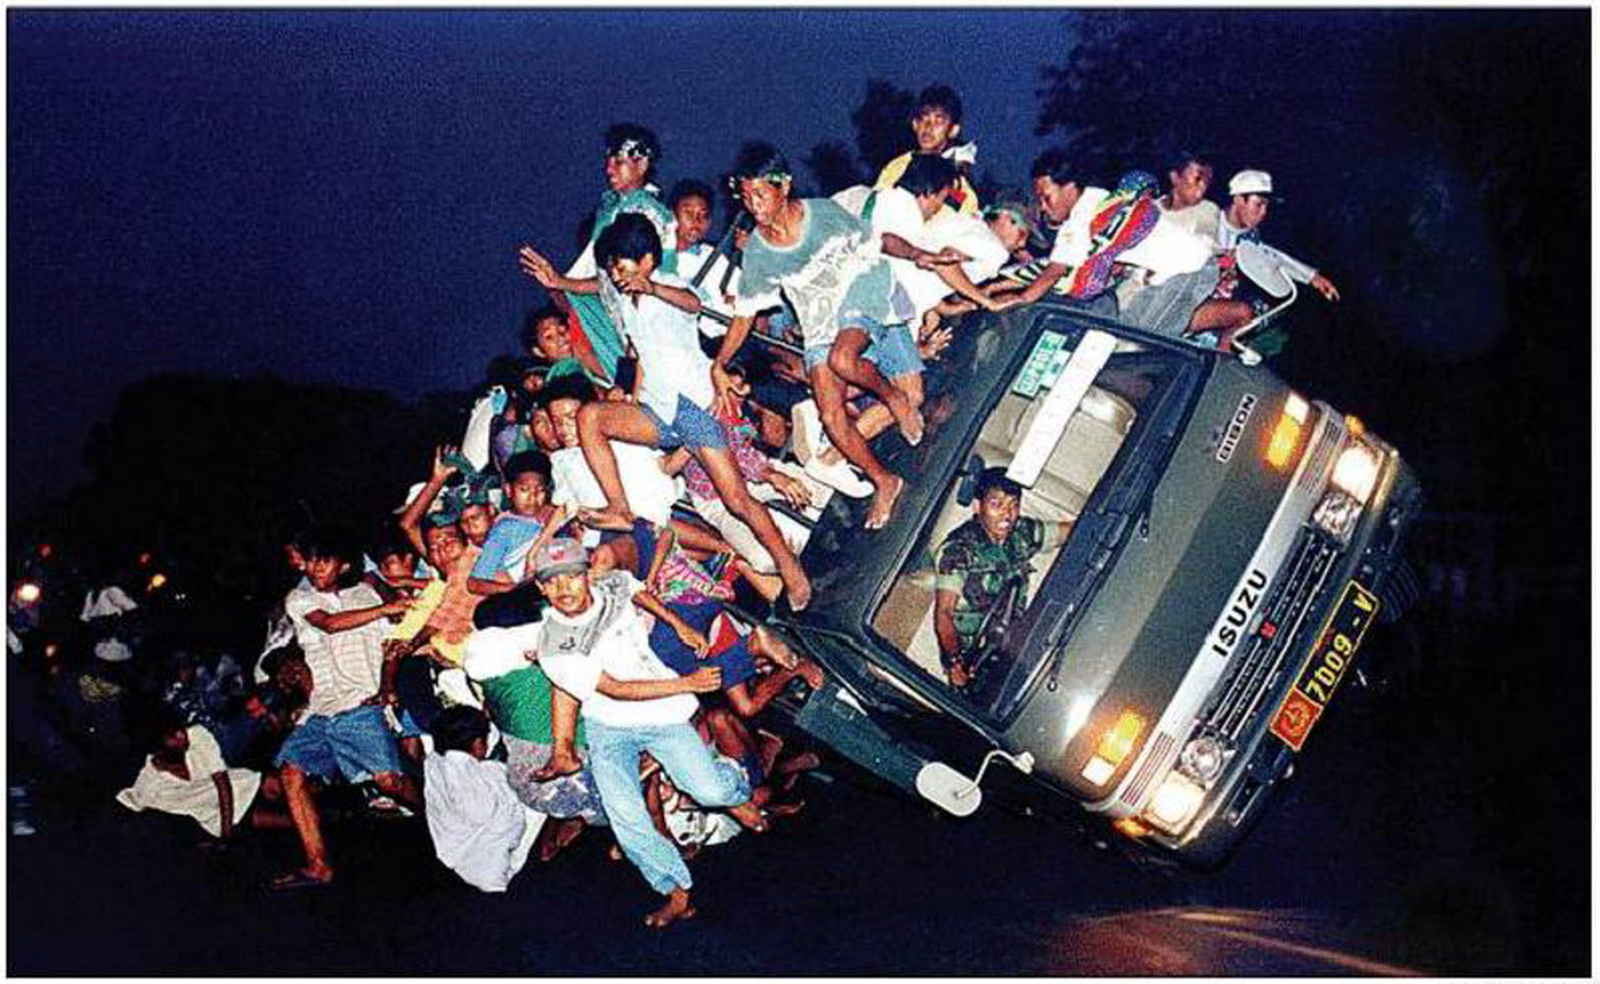 Foto Sejarah: Tergulingnya Truk Pembawa Bonek (1995) Images may be subject to copyright. Find out more Related images